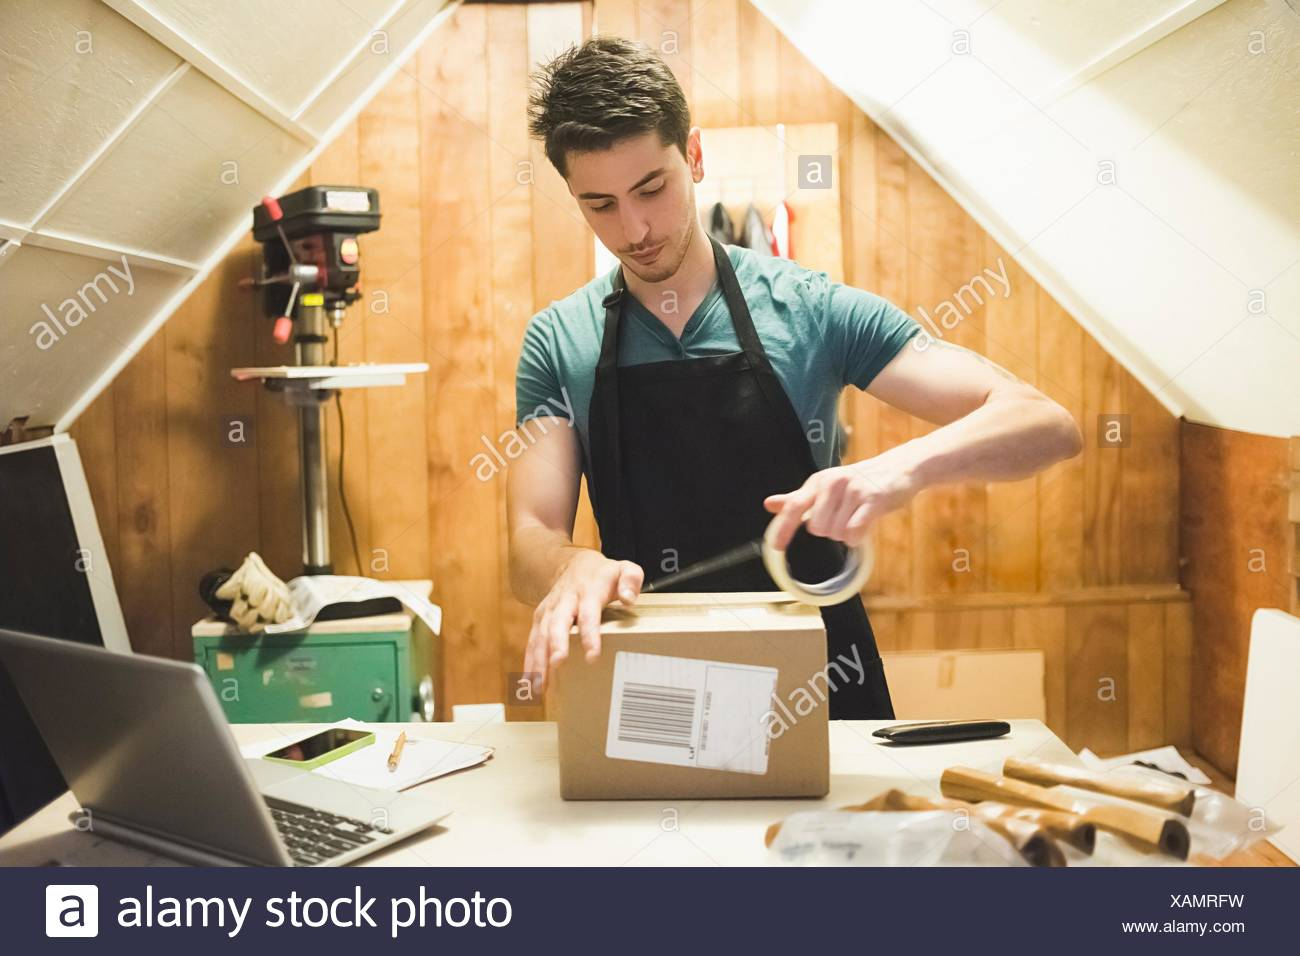 Young man using sticking tape to prepare package for delivery - Stock Image